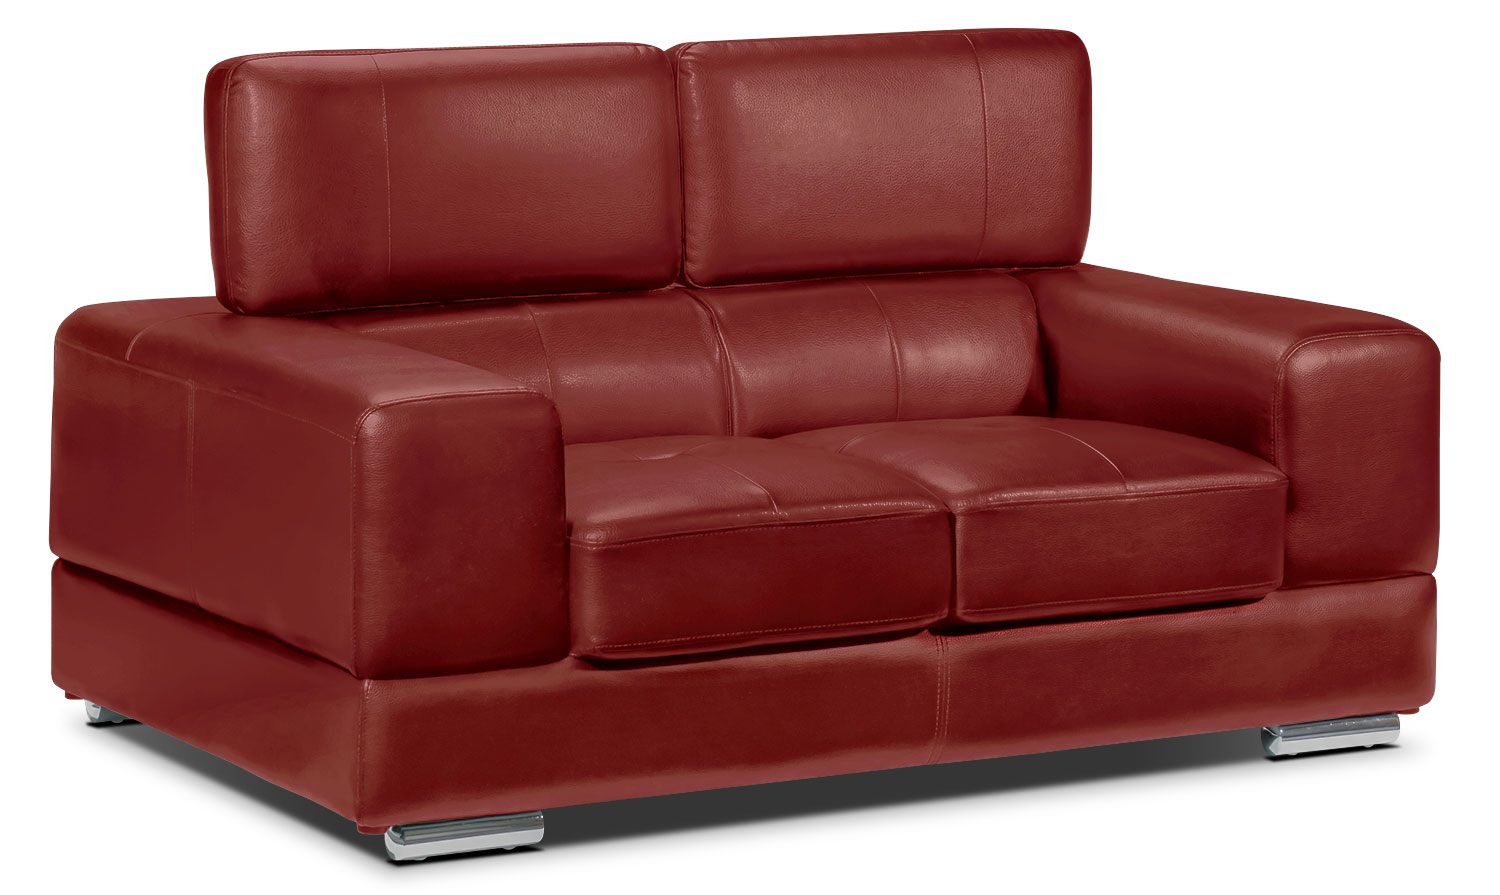 Living Room Furniture - Driscoll Loveseat - Red